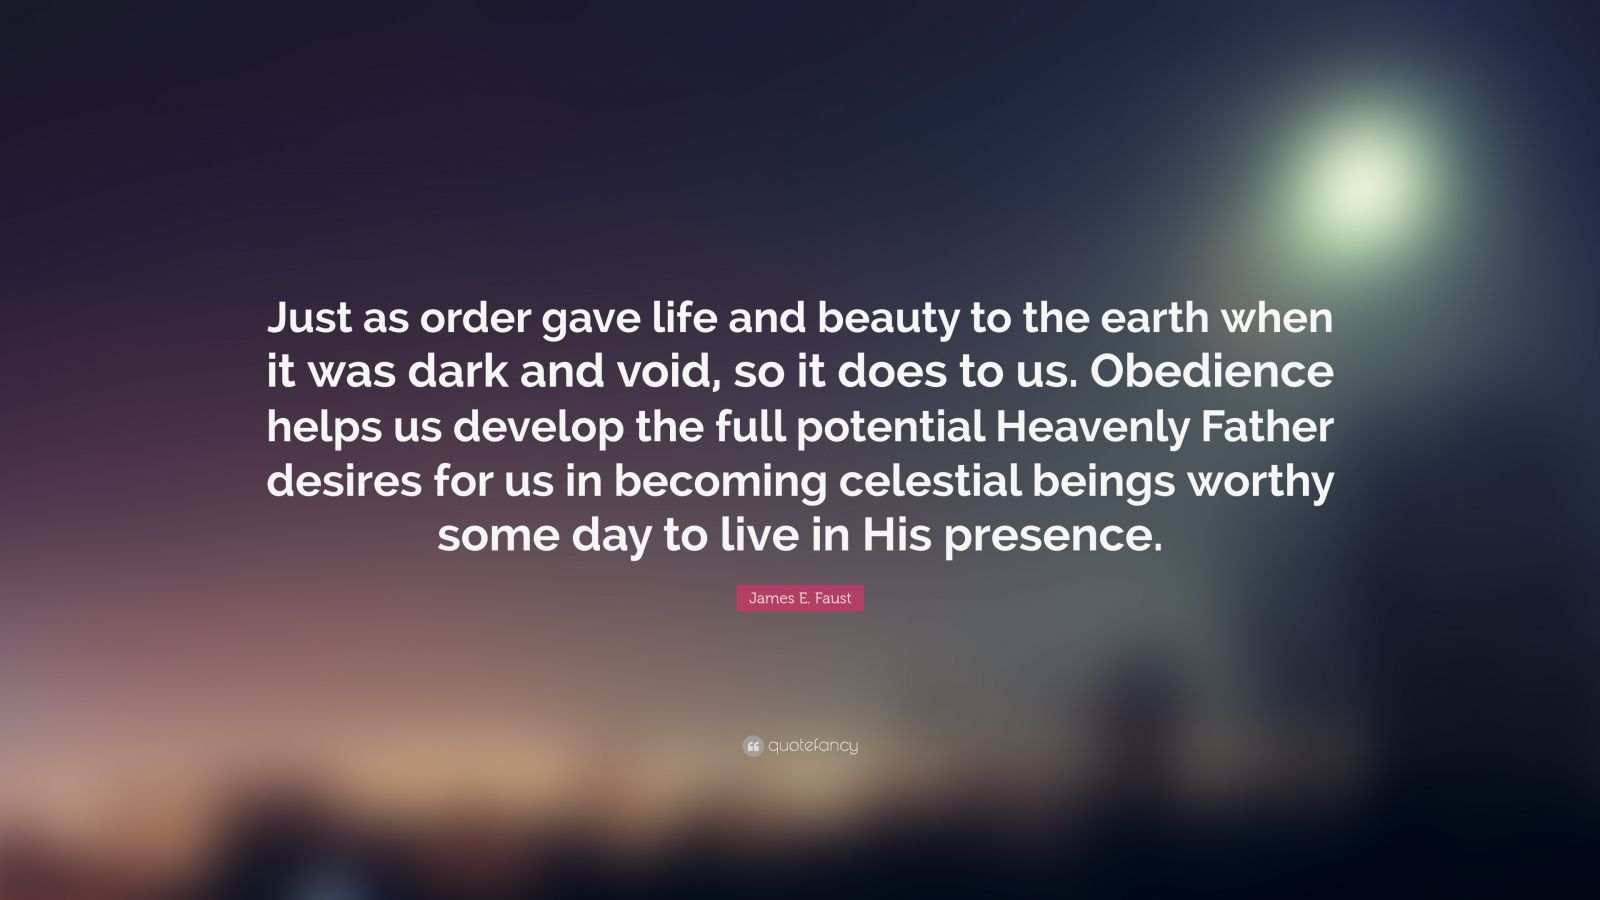 """James E. Faust Quote: """"Just as order gave life and beauty to the earth when it was dark and void, so it does to us. Obedience helps us develop the full potential Heavenly Father desires for us in becoming celestial beings worthy some day to live in His presence."""""""